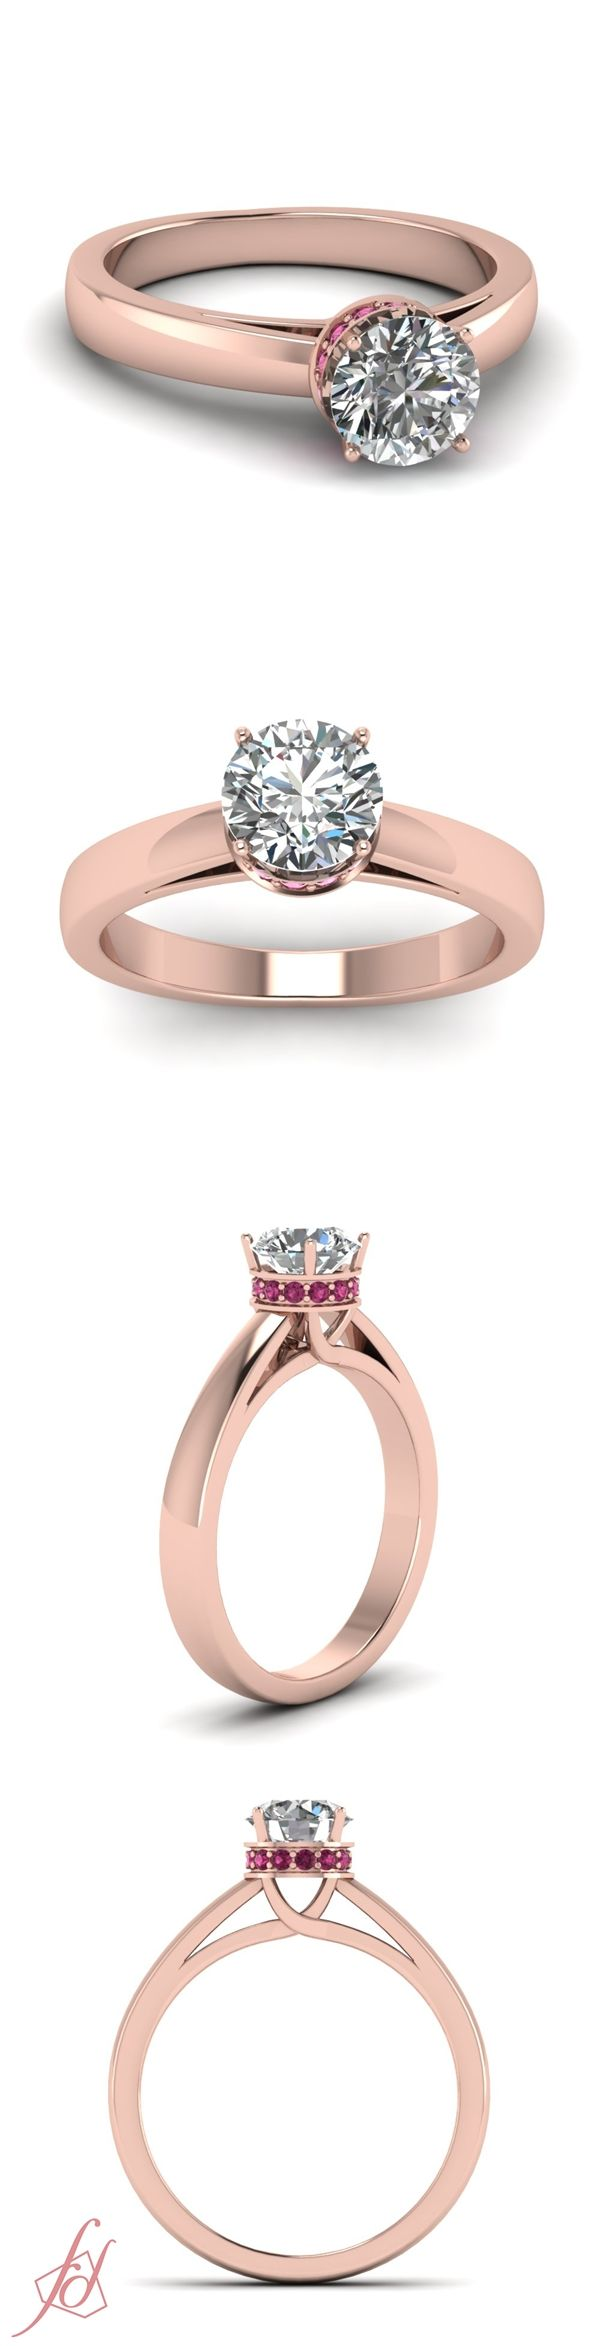 Bejeweled Crown Ring || Round Cut Diamond Side Stone Ring With Pink Sapphire In 14K Rose Gold